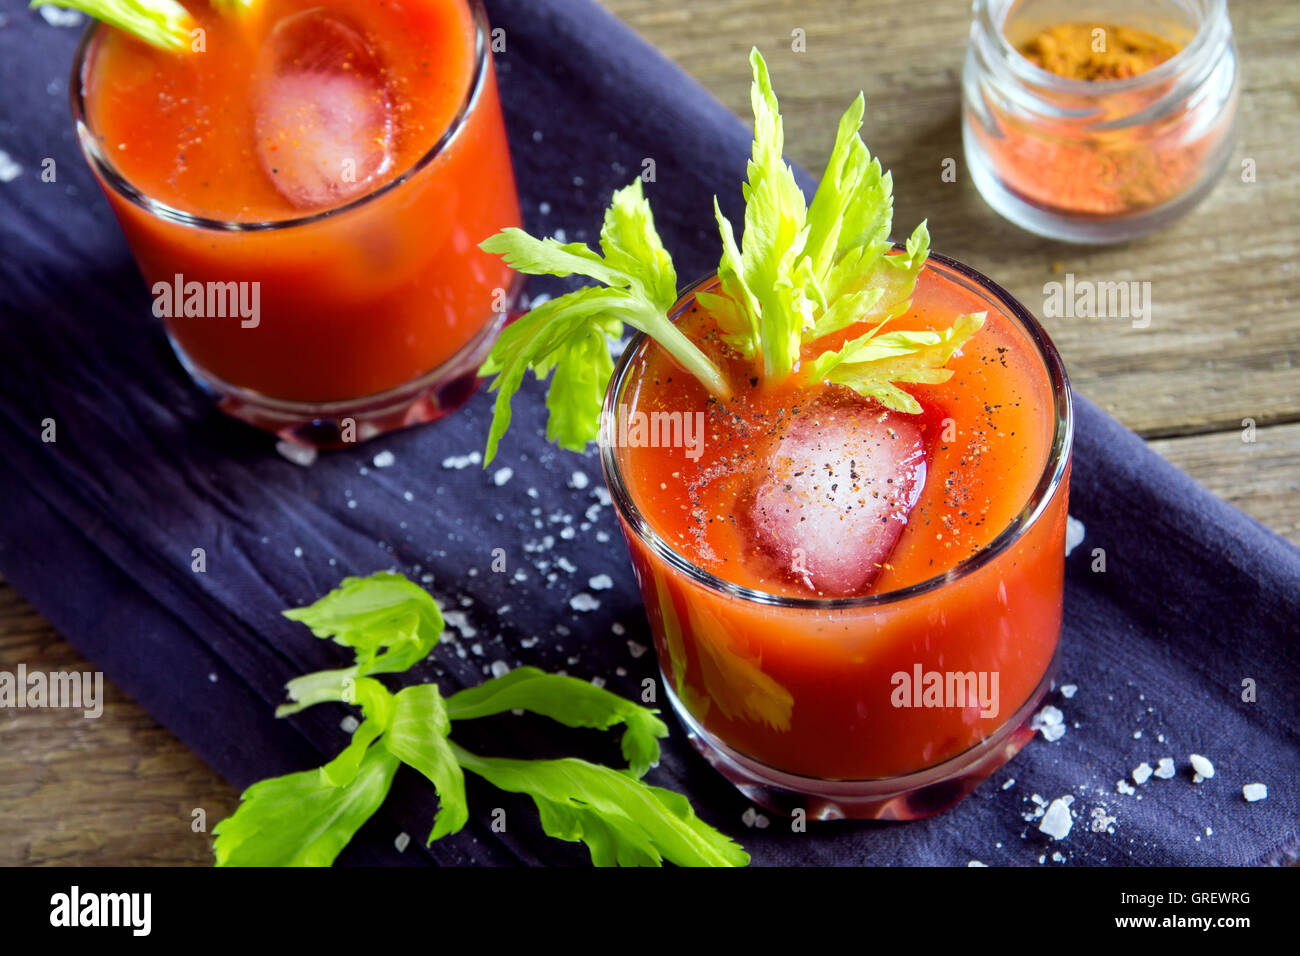 Tomato juice with celery, spices, salt and ice in portion glasses - Stock Image